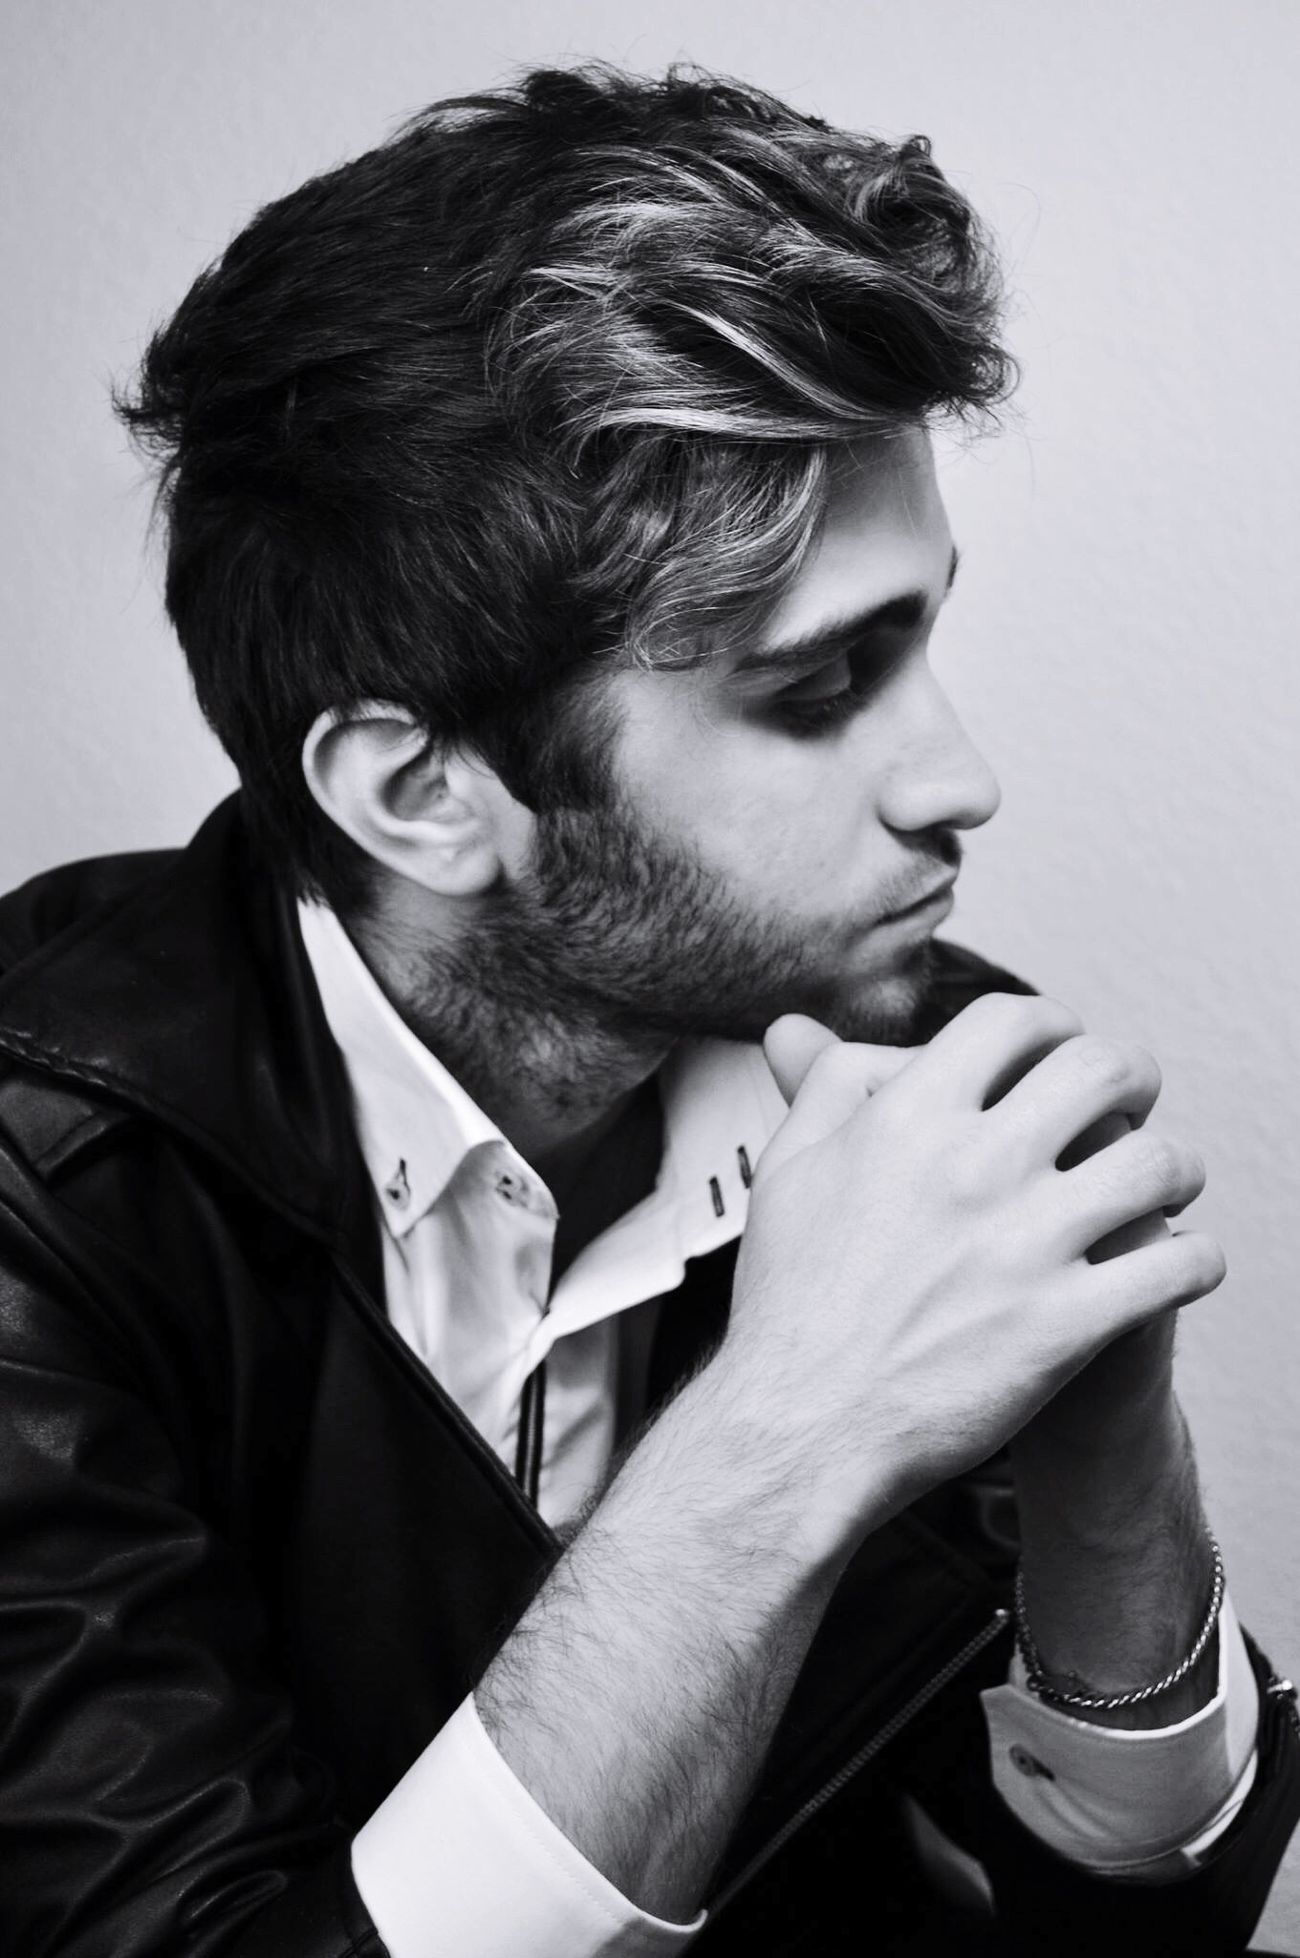 Side View Men One Person Lifestyles Indoors  Beard Fashion Blackandwhite Guy Photoshoot Shooting Leather Jacket Close-up Young Adult Day